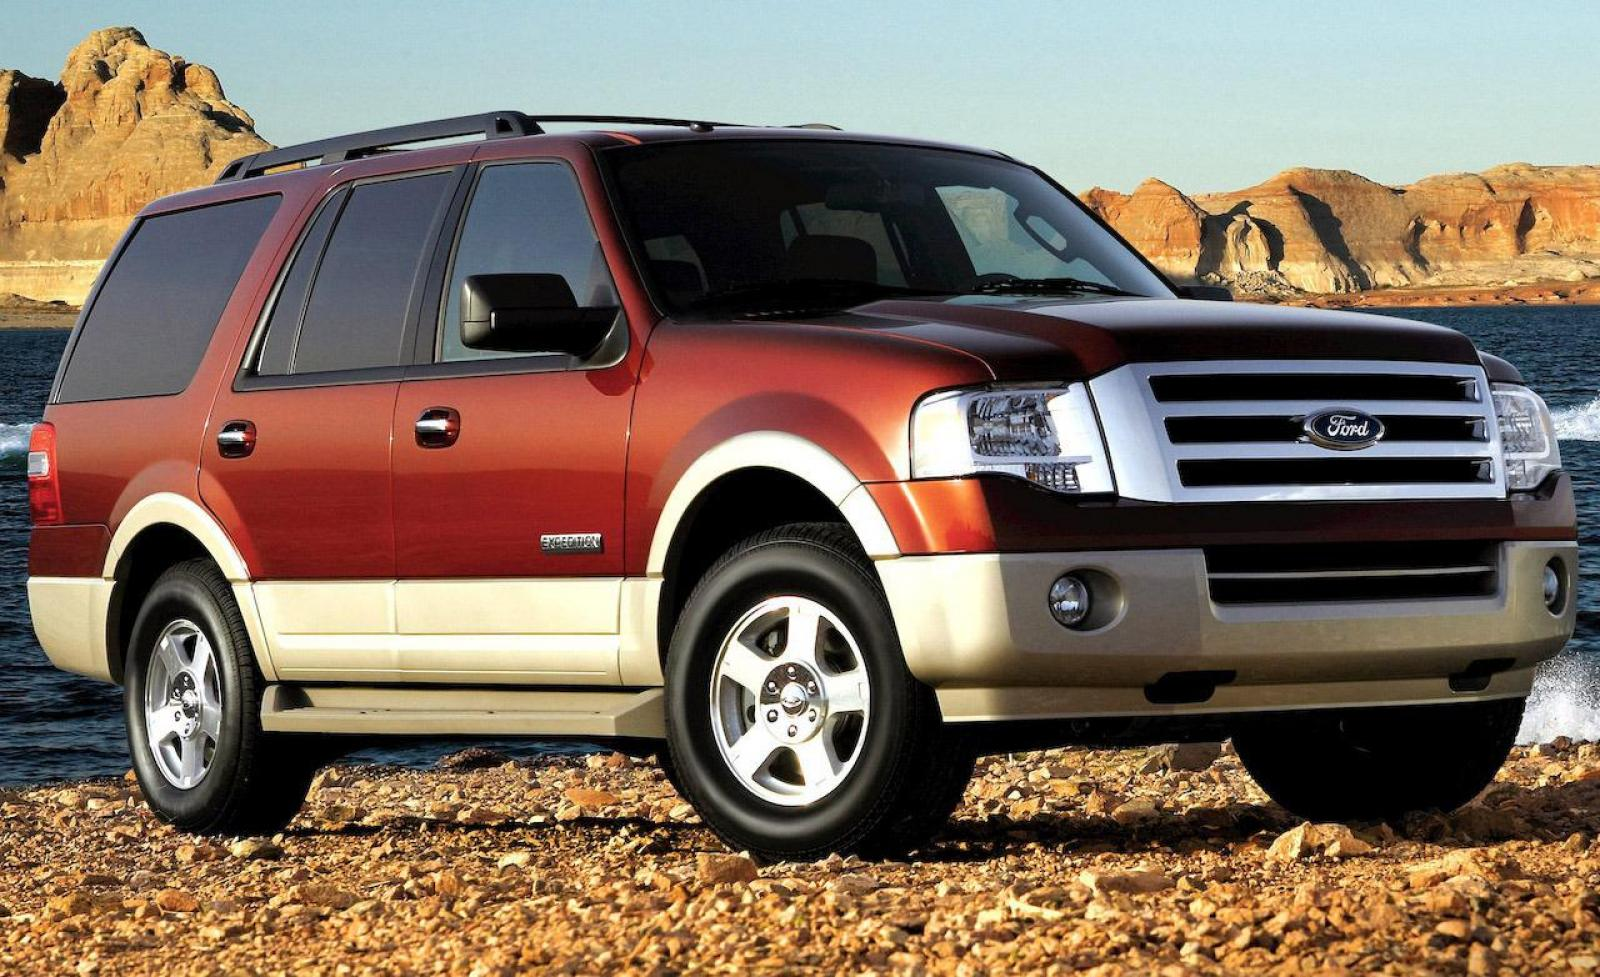 2009 ford expedition 1 800 1024 1280 1600 origin